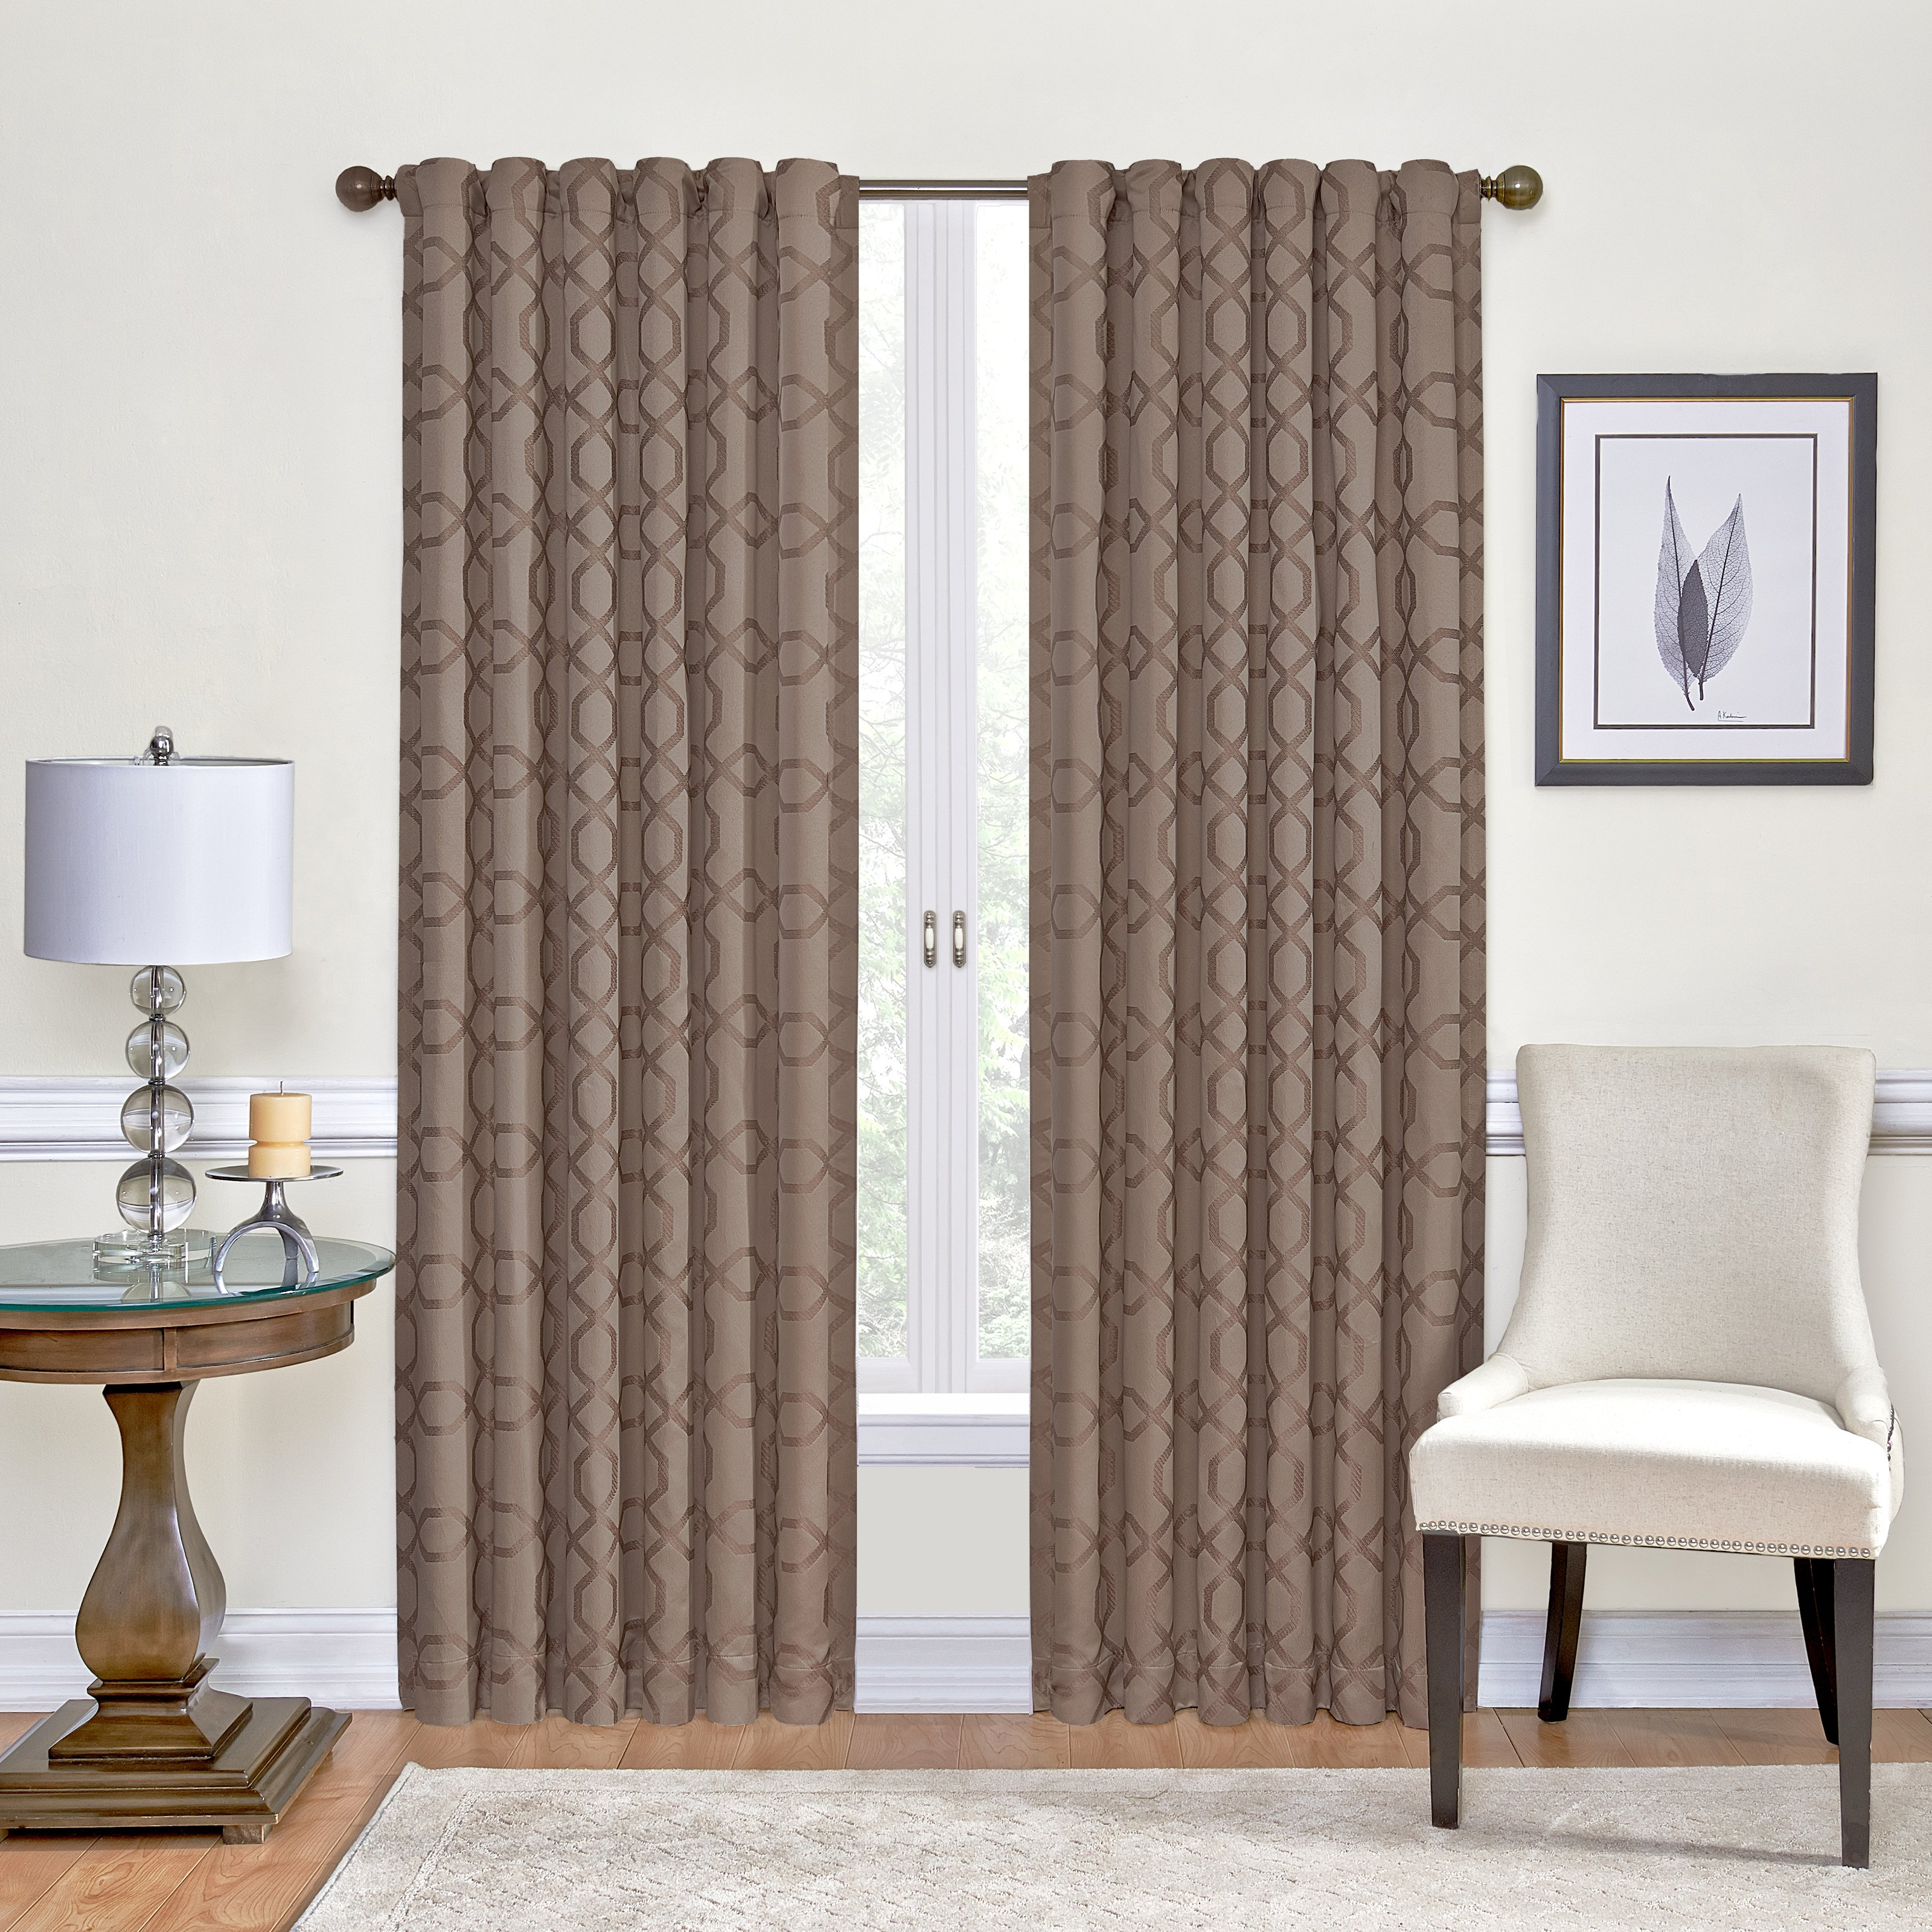 Vue Signature Premier Room Darkening Drapery Panel